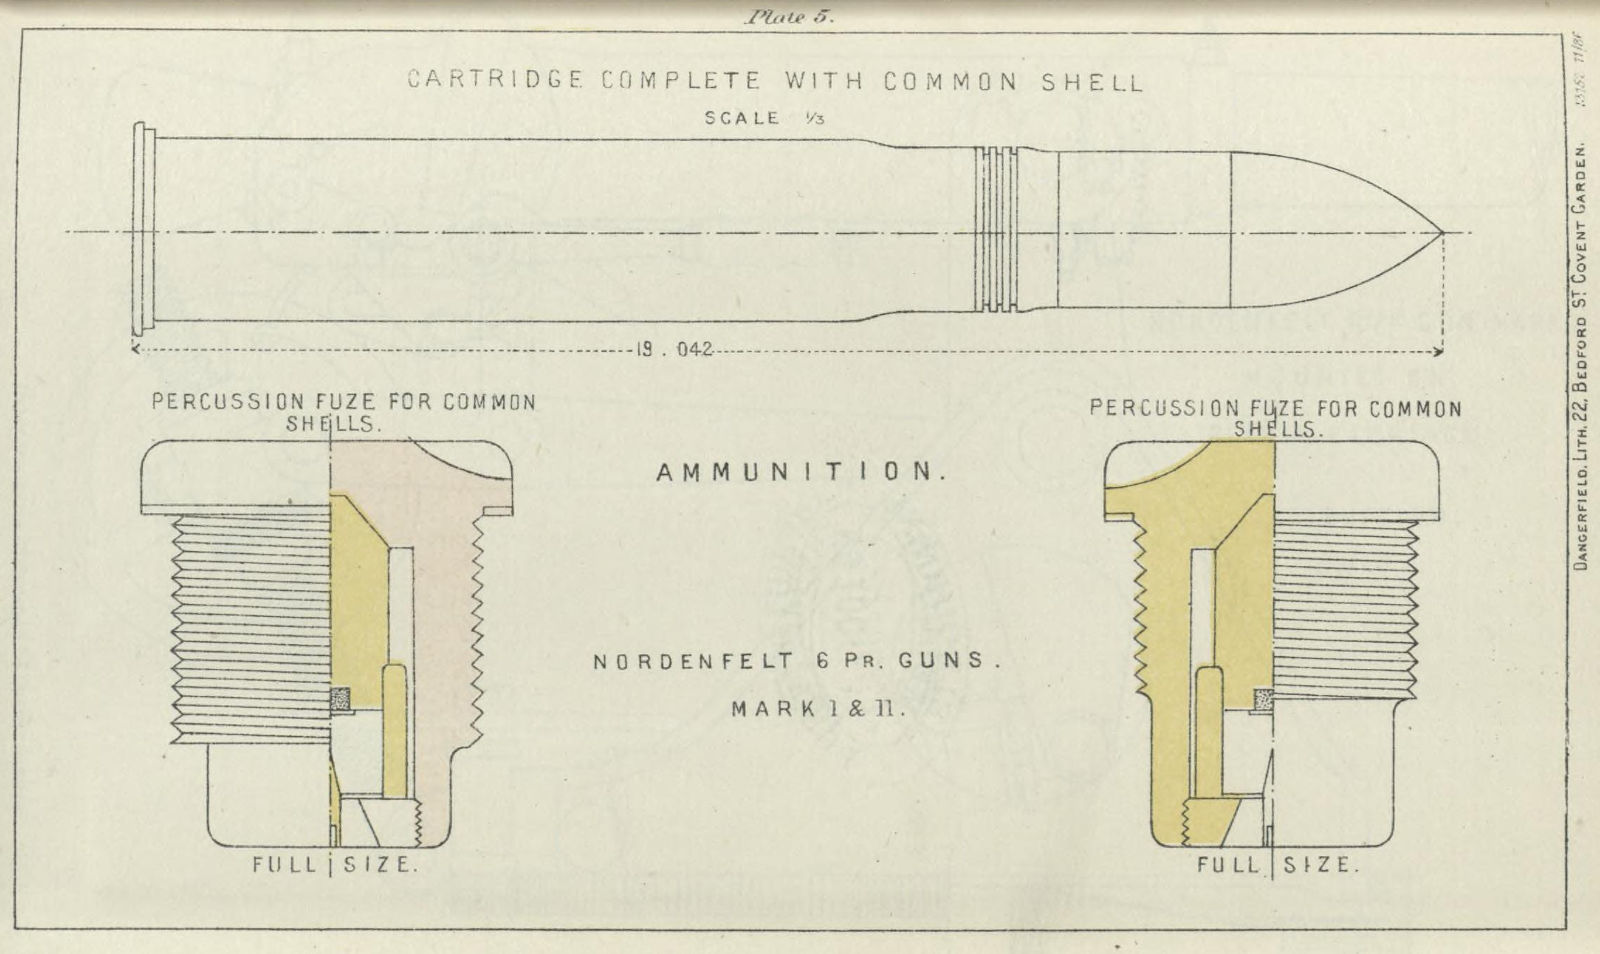 File:QF 6 pounder Nordenfelt common shell fixed round and